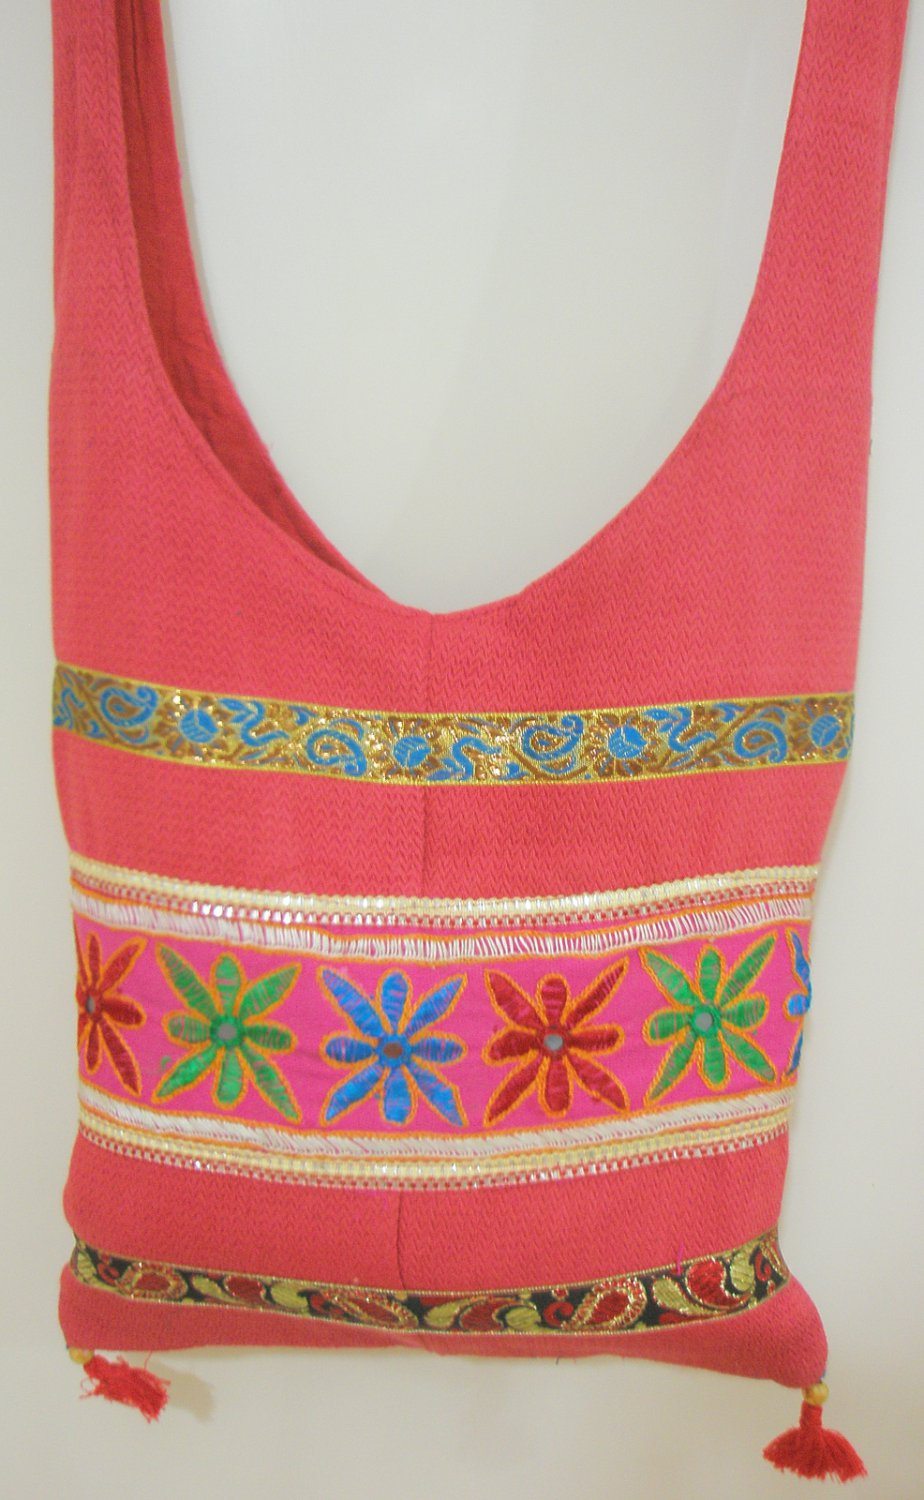 Vintage Hippy Style Embroidered Cross Body Messenger Sling Bag Cotton Fabric Retro India